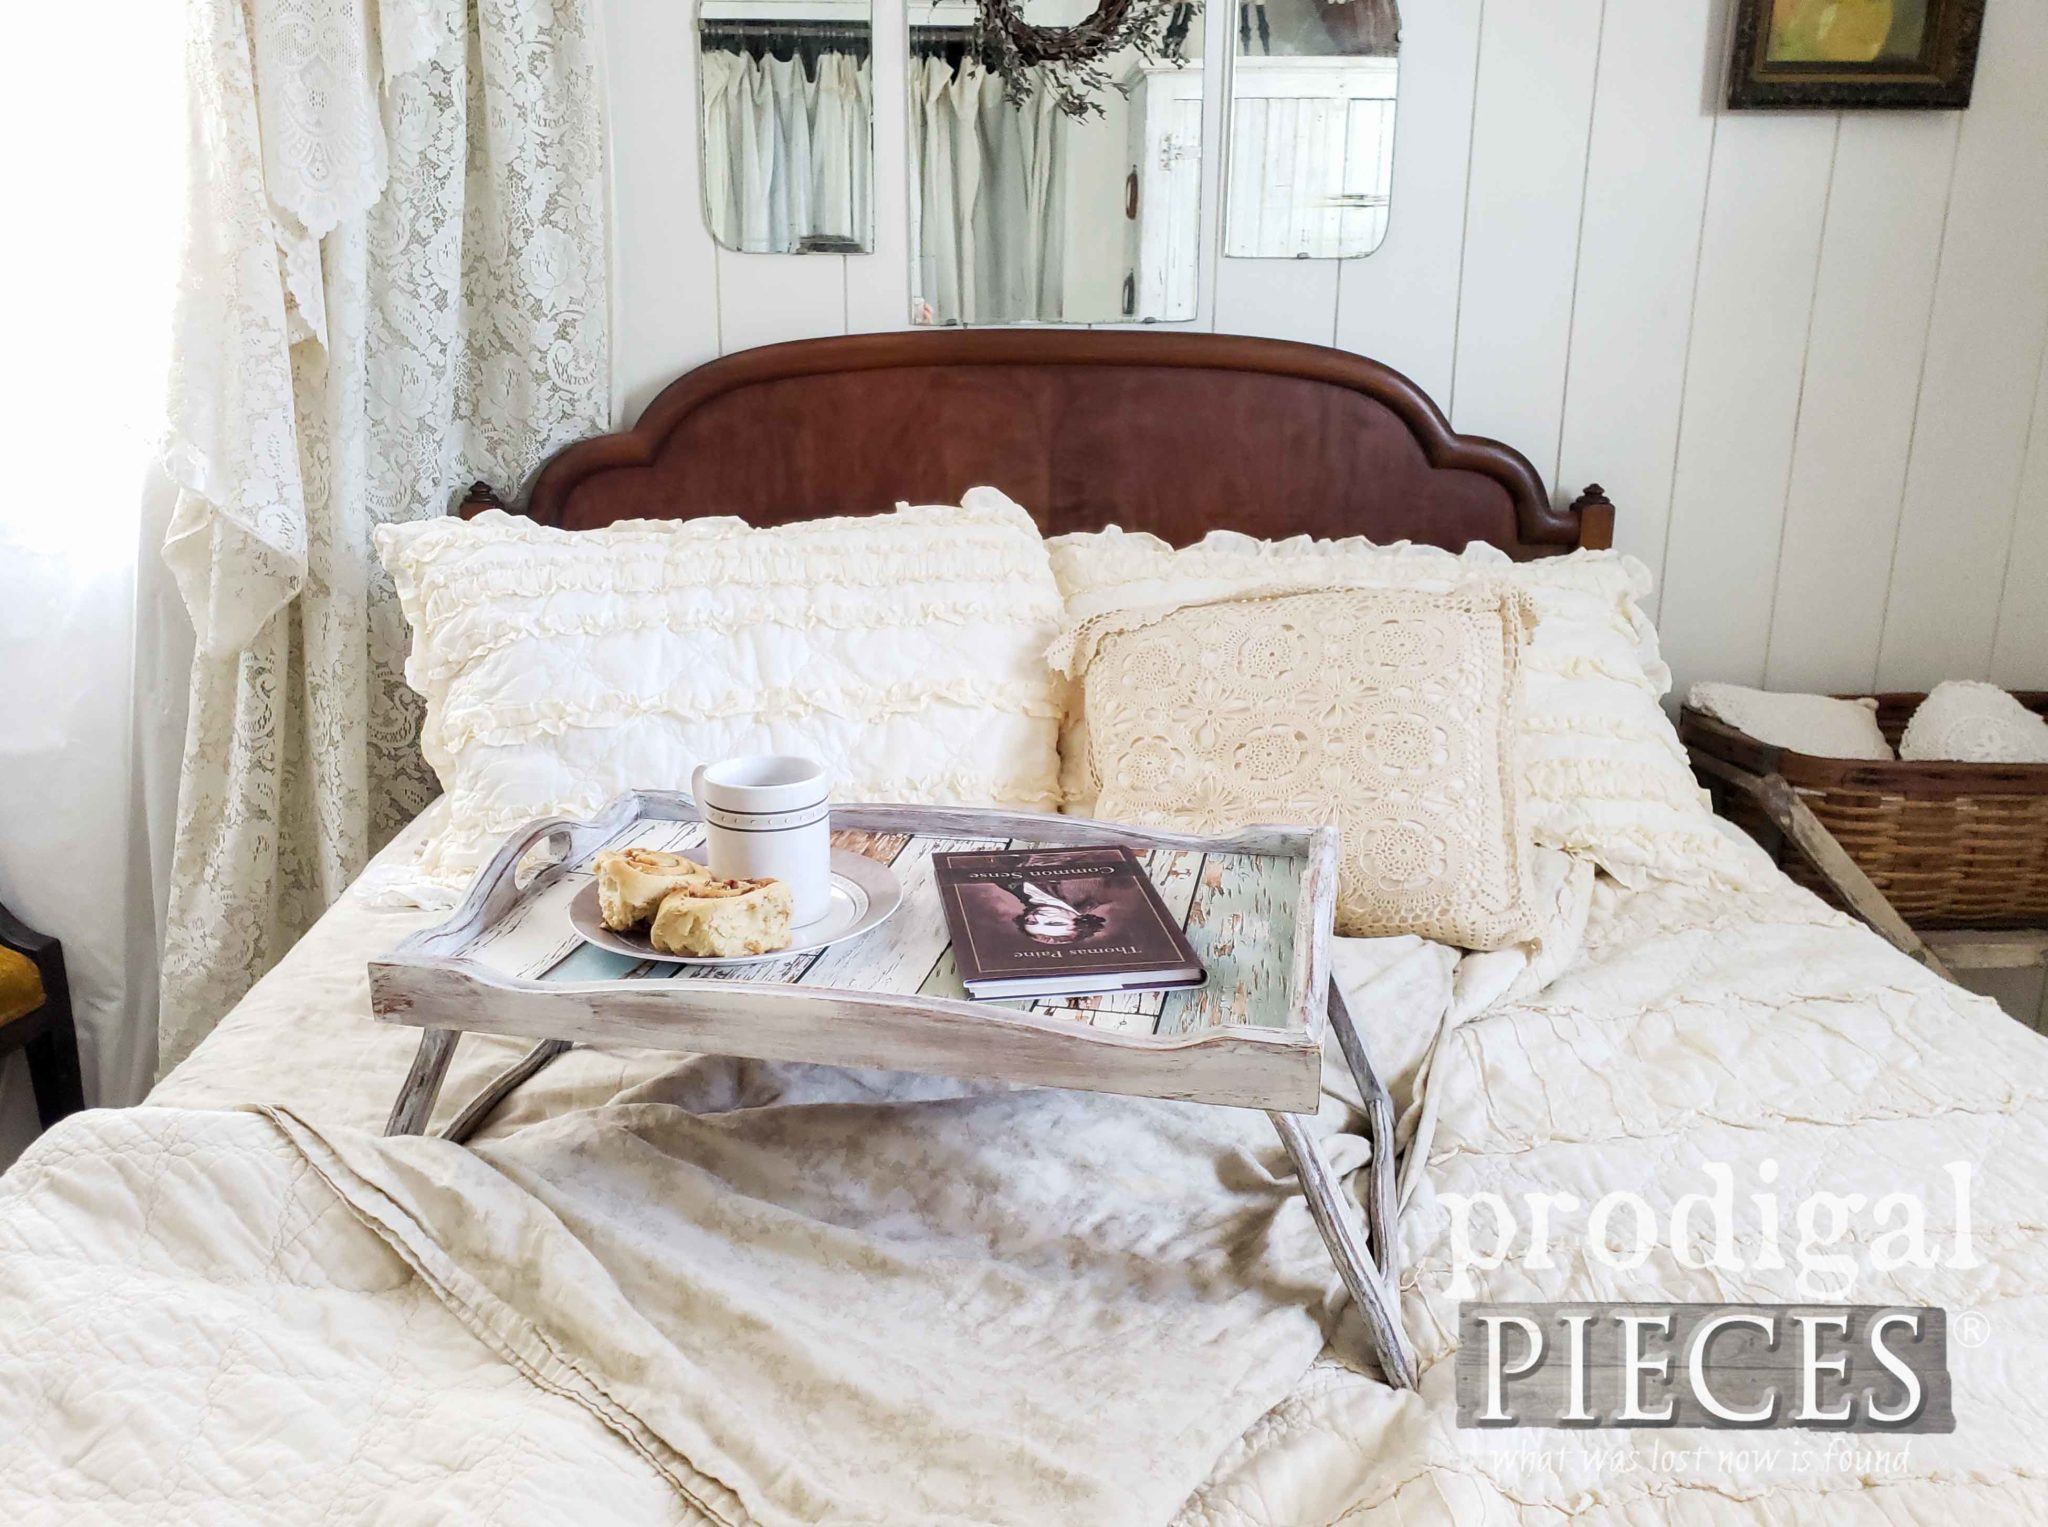 Cozy Vintage Farmhouse Style Bedroom Decor | DIY Your Home with Larissa of Prodigal Pieces | prodigalpieces.com #prodigalpieces #farmhouse #vintage #home #shopping #homedecor #homedecorideas